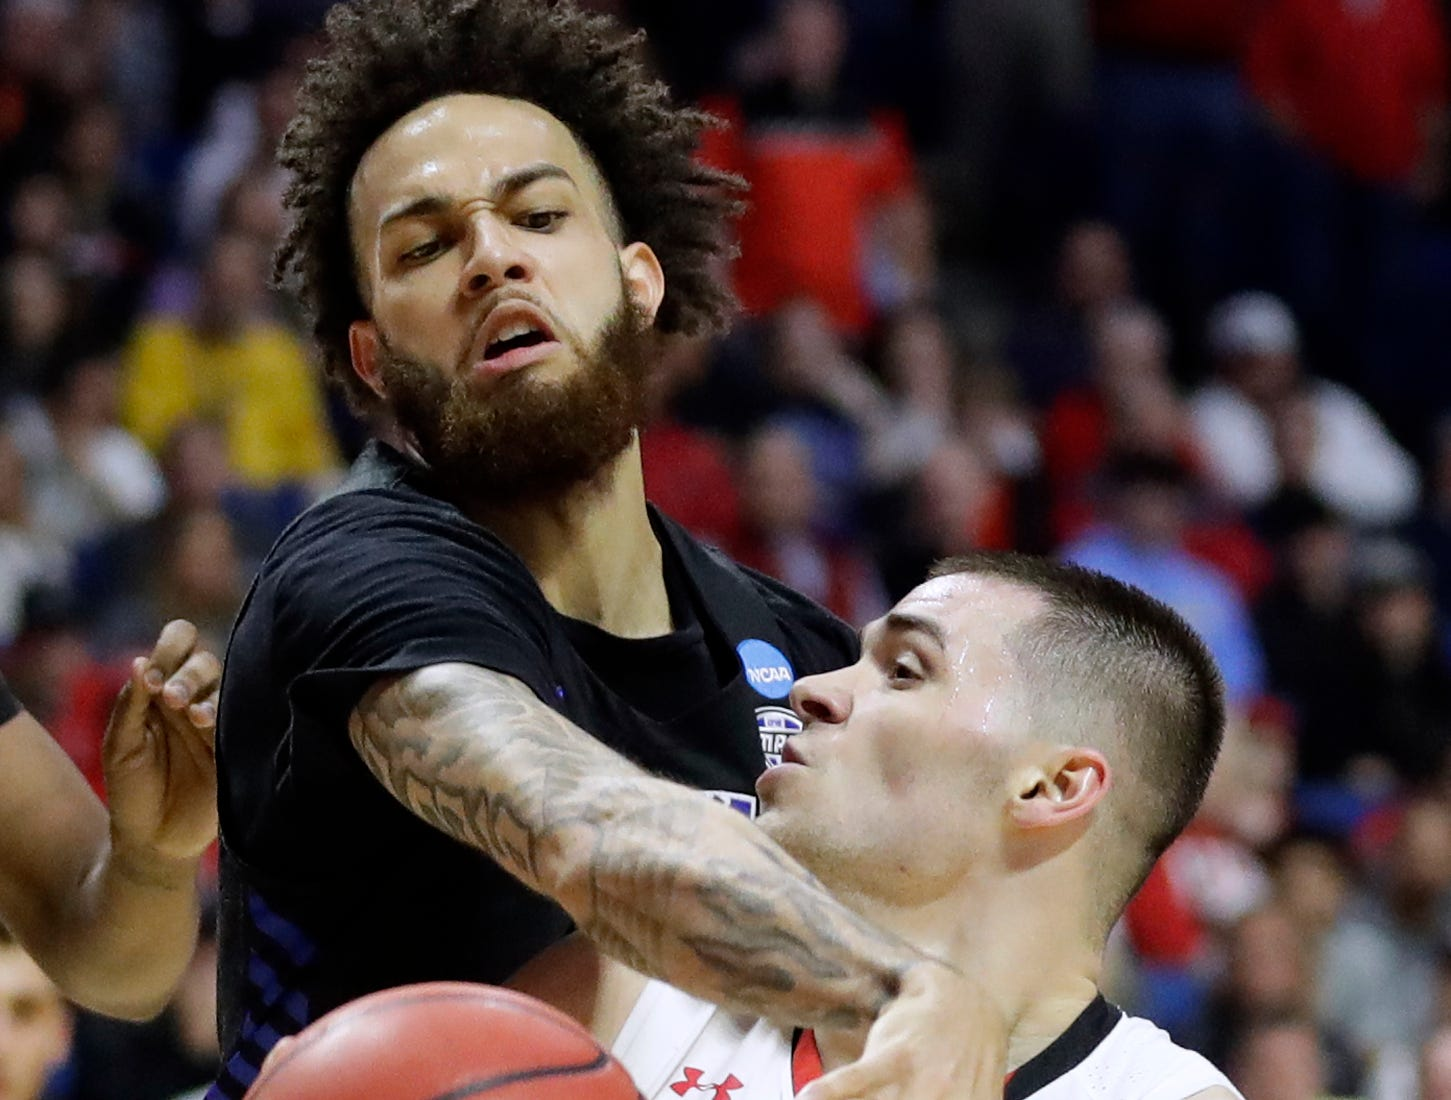 Texas Tech's Matt Mooney, bottom, looks to the basket as Buffalo's Jeremy Harris defends during the first half of a second round men's college basketball game in the NCAA Tournament Sunday, March 24, 2019, in Tulsa, Okla. (AP Photo/Jeff Roberson)